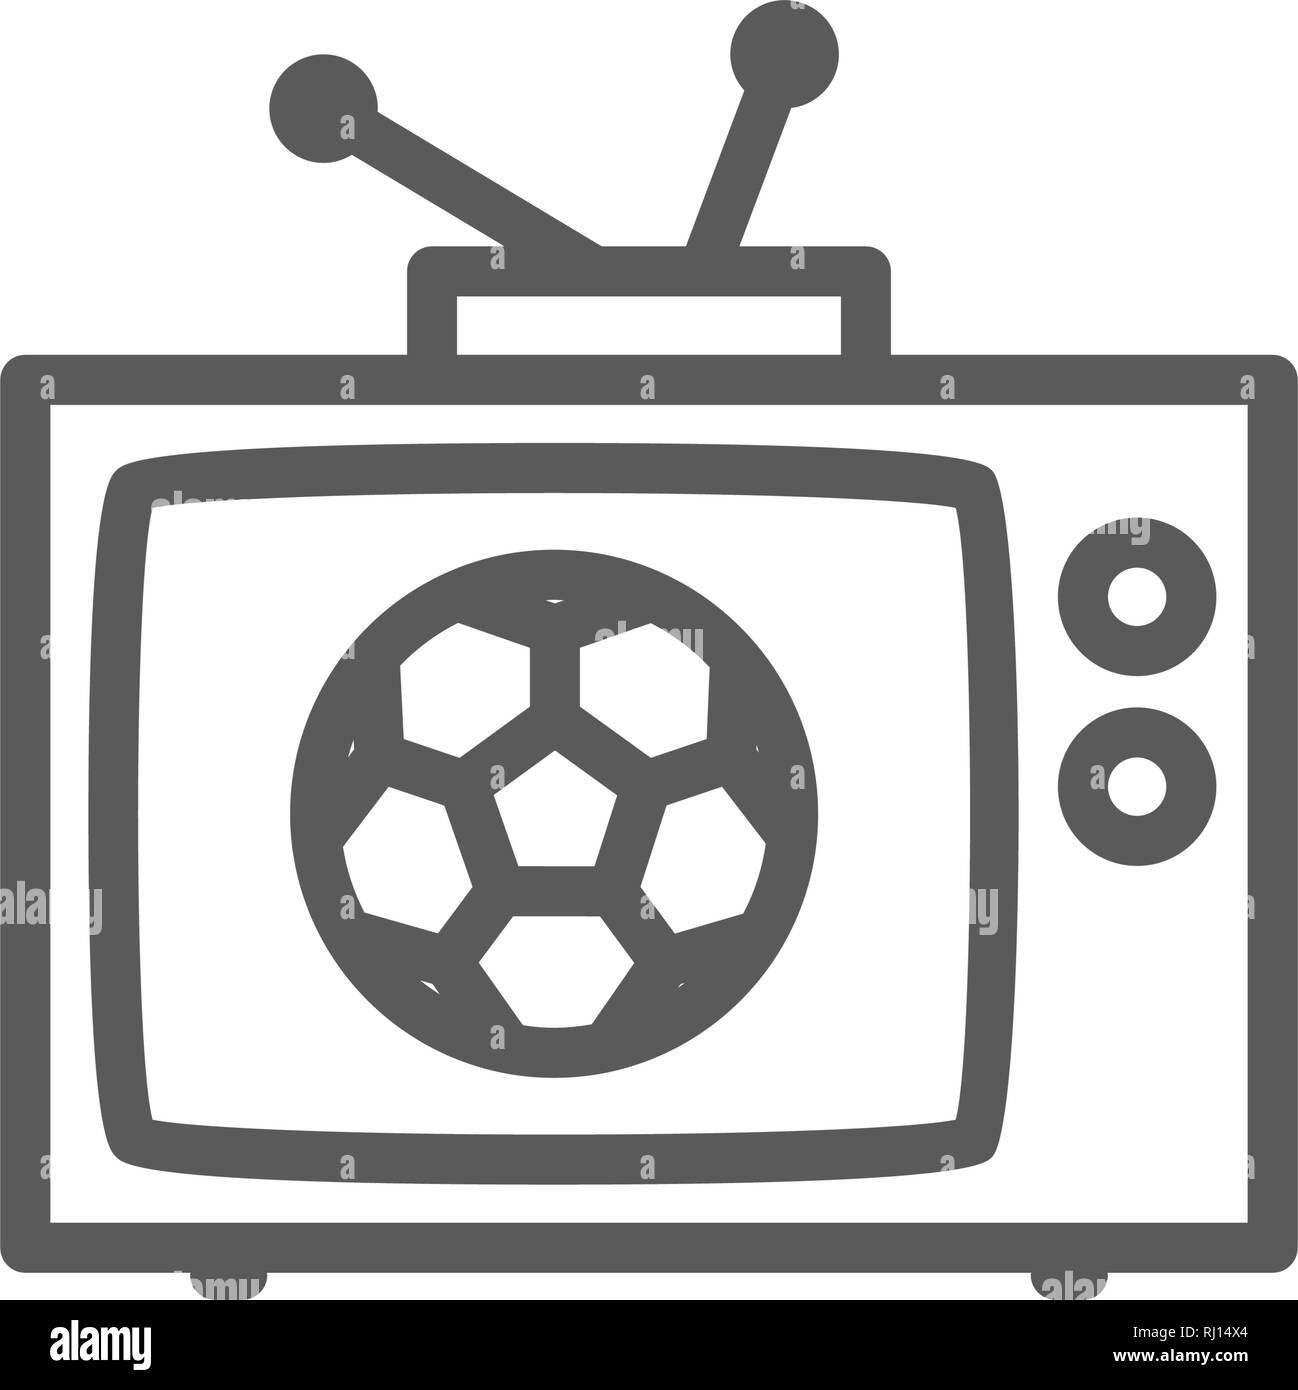 Broadcast match on TV, soccer line icon. - Stock Vector